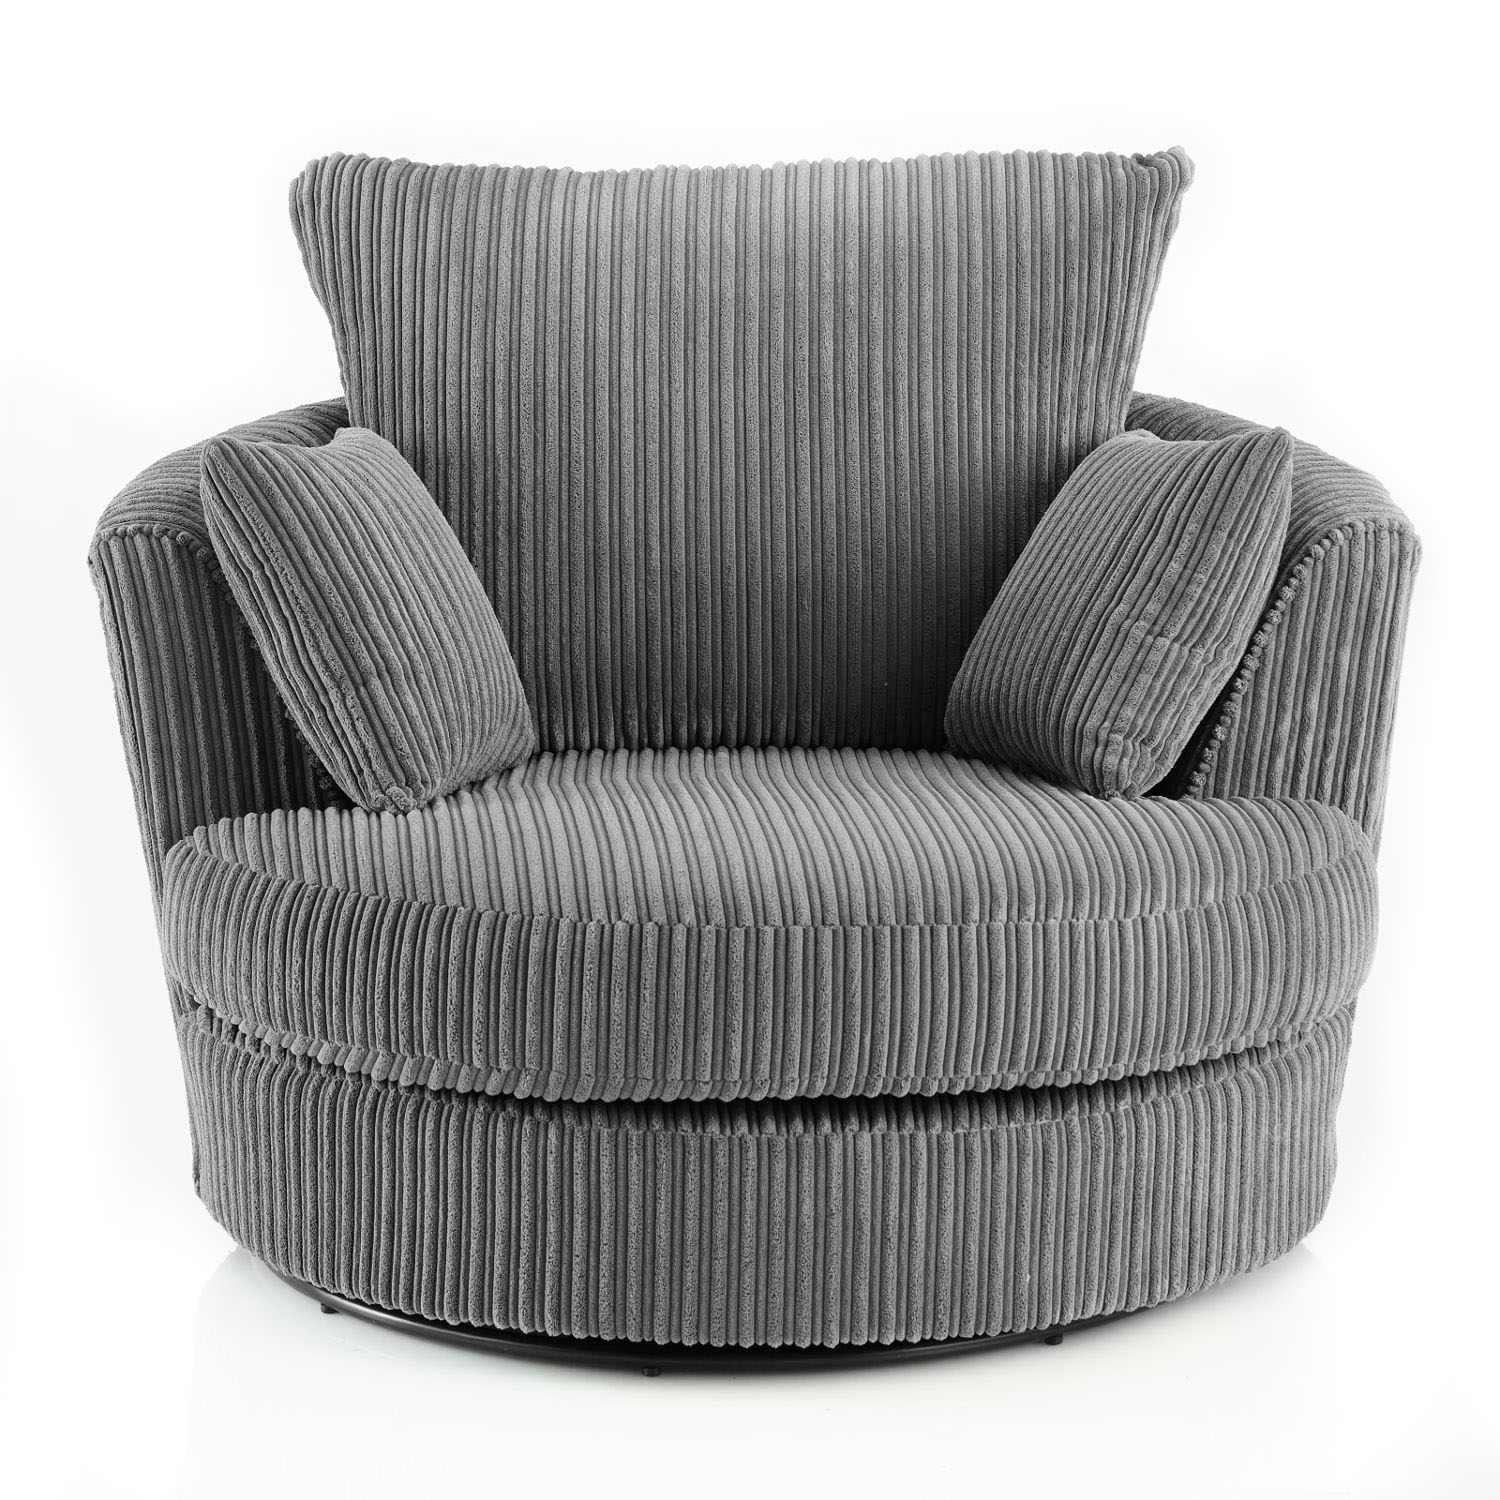 Miranda Swivel Cuddle Chair Fabric Leather Armchair Jumbo Cord Grey Pertaining To Grey Swivel Chairs (Photo 13 of 20)